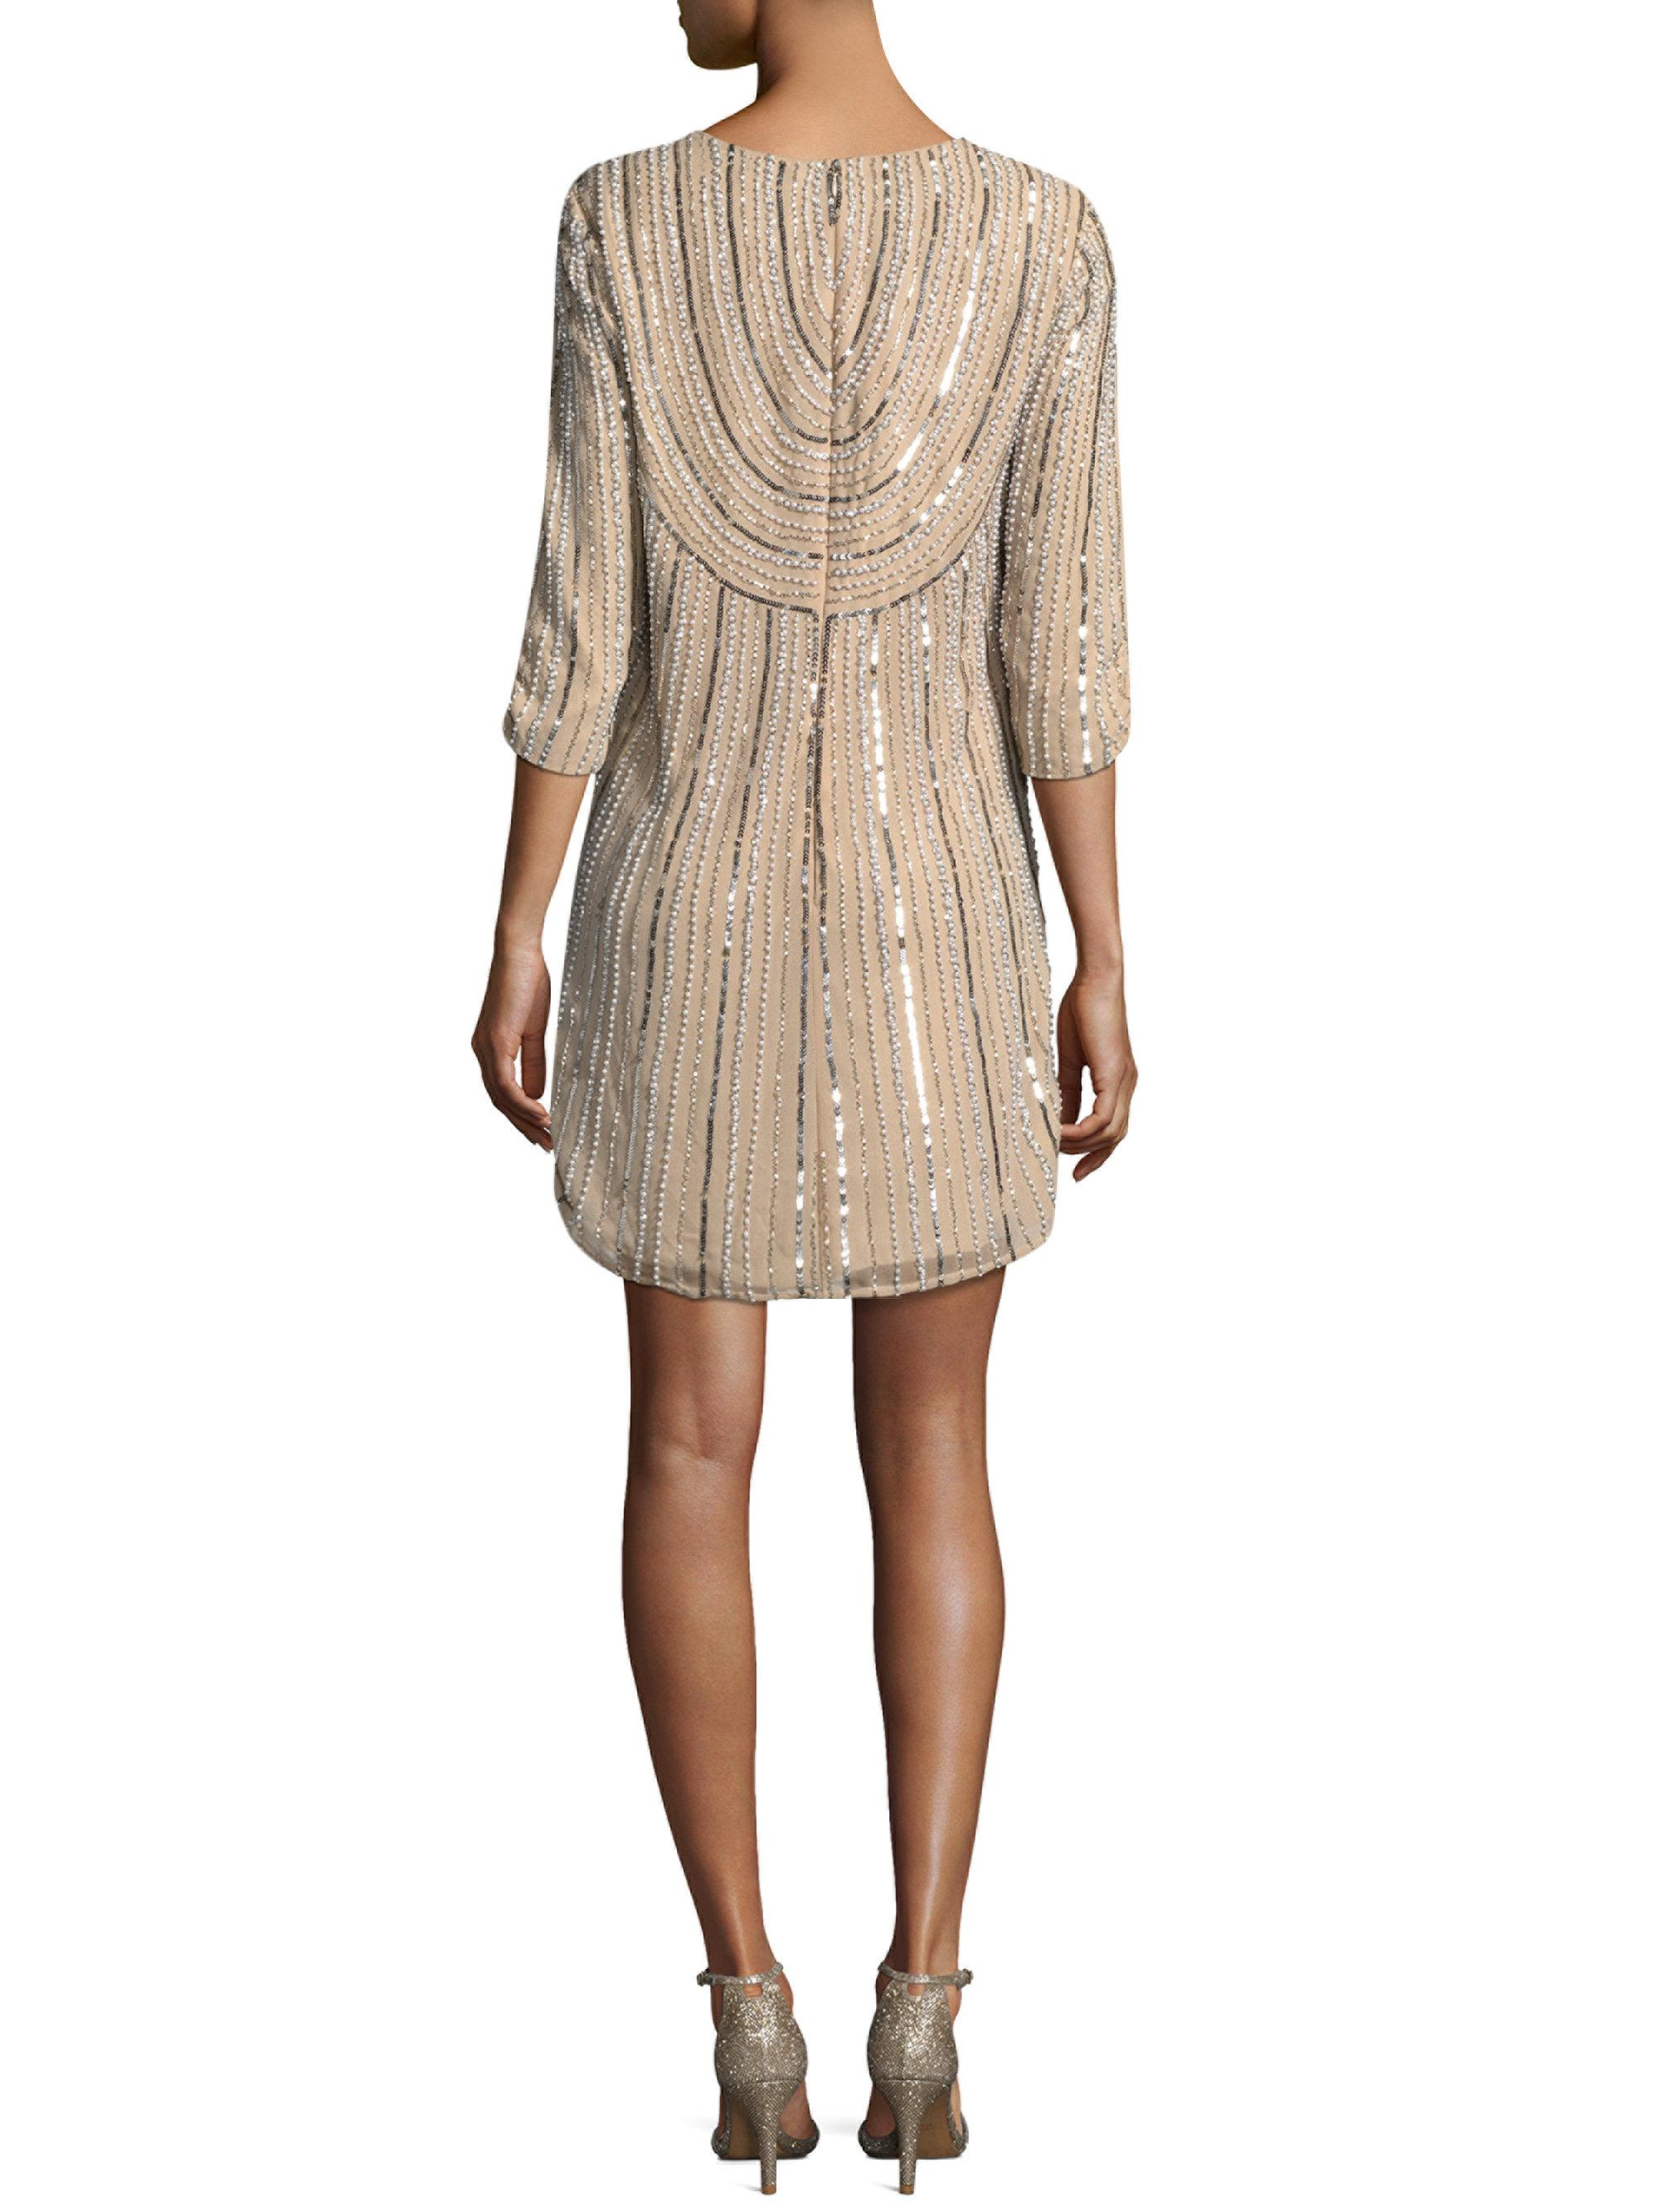 Lyst parker black petra sheath dress in natural for Saks fifth avenue wedding guest dresses